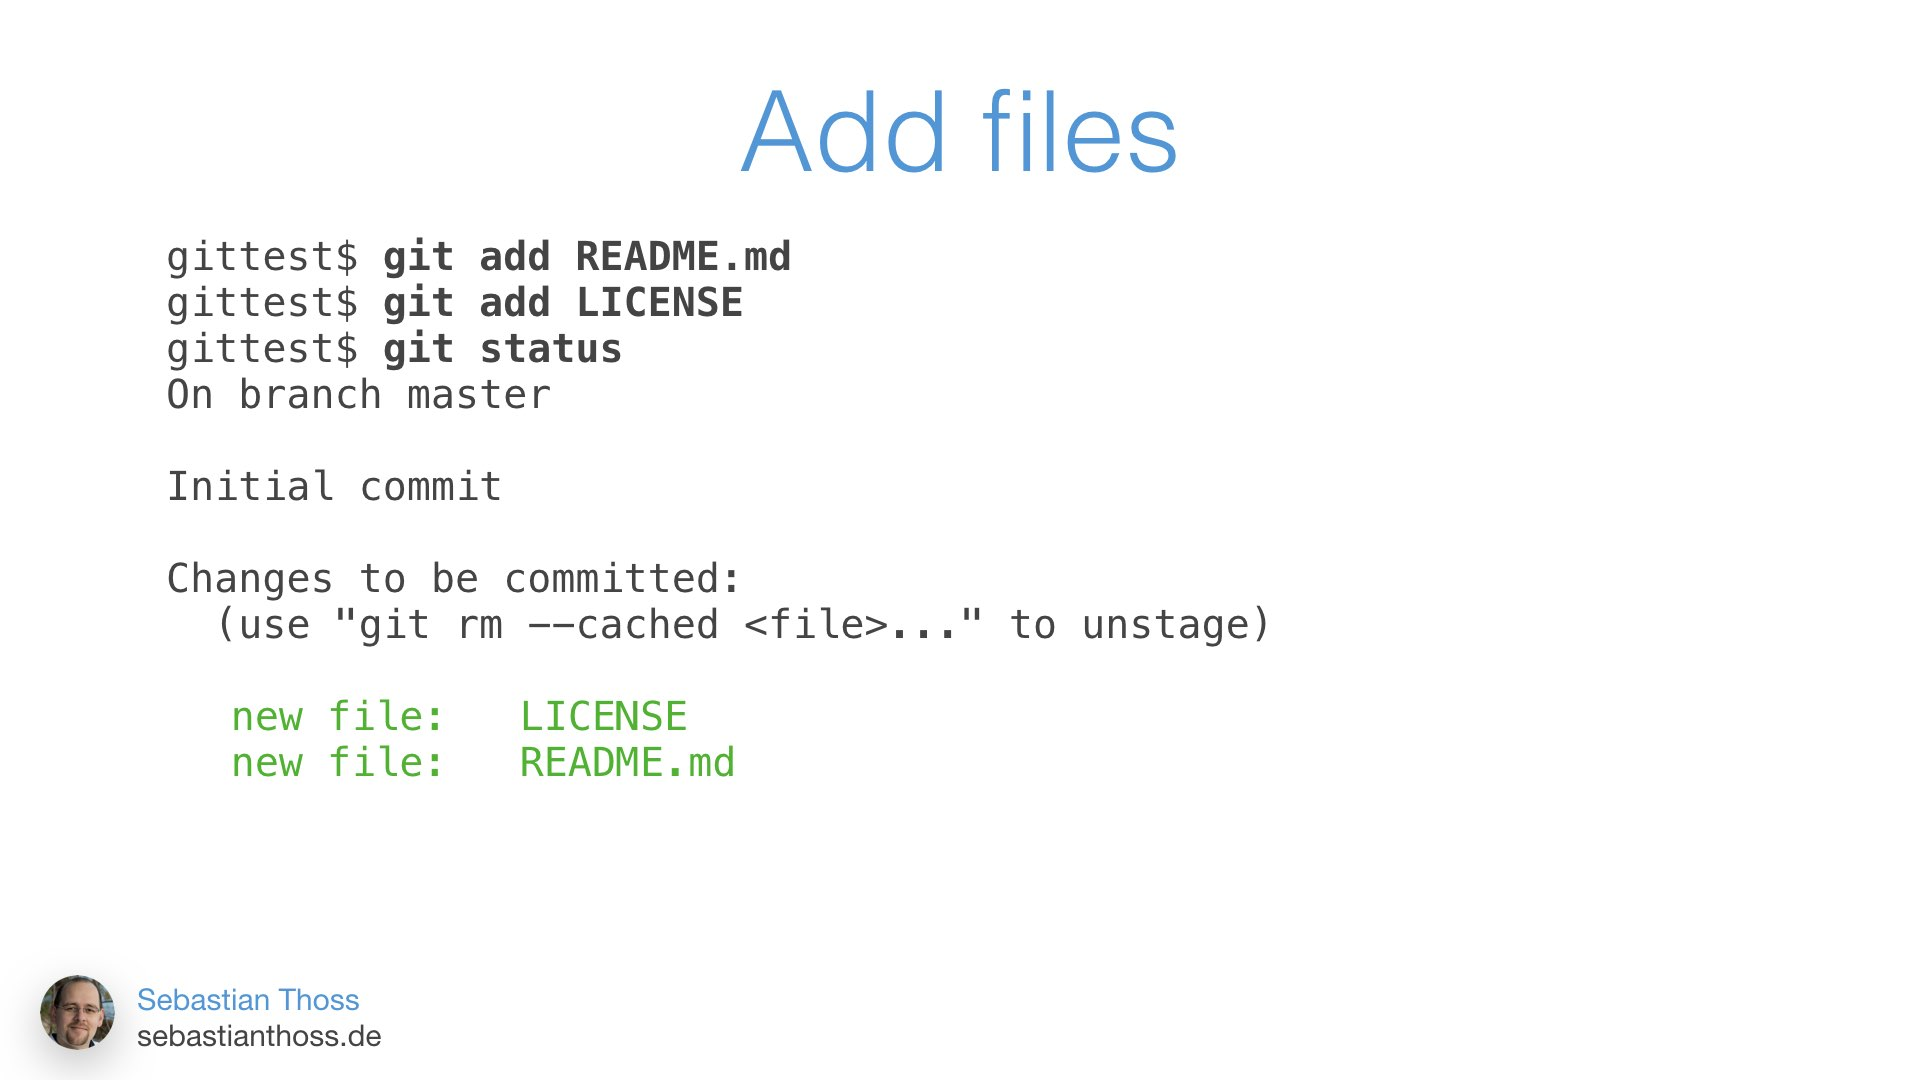 This slide shows how to add a file to git repository